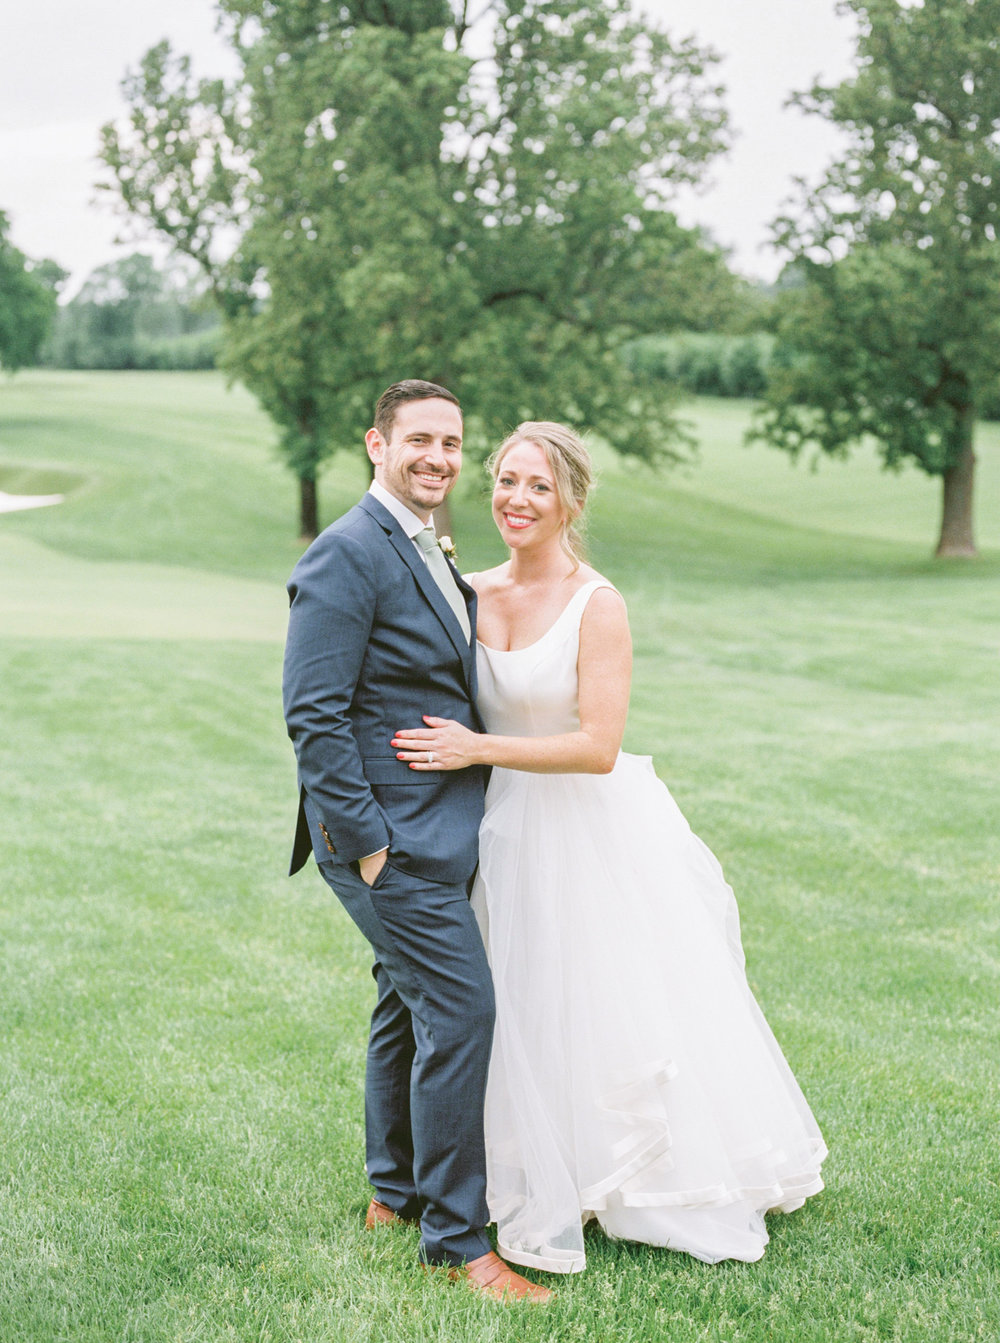 The happy couple. Kerry had the cutest flirty flowing white gown for all the fun vibes for her Italian inspired summer lemon wedding at the Baltimore Country Club.